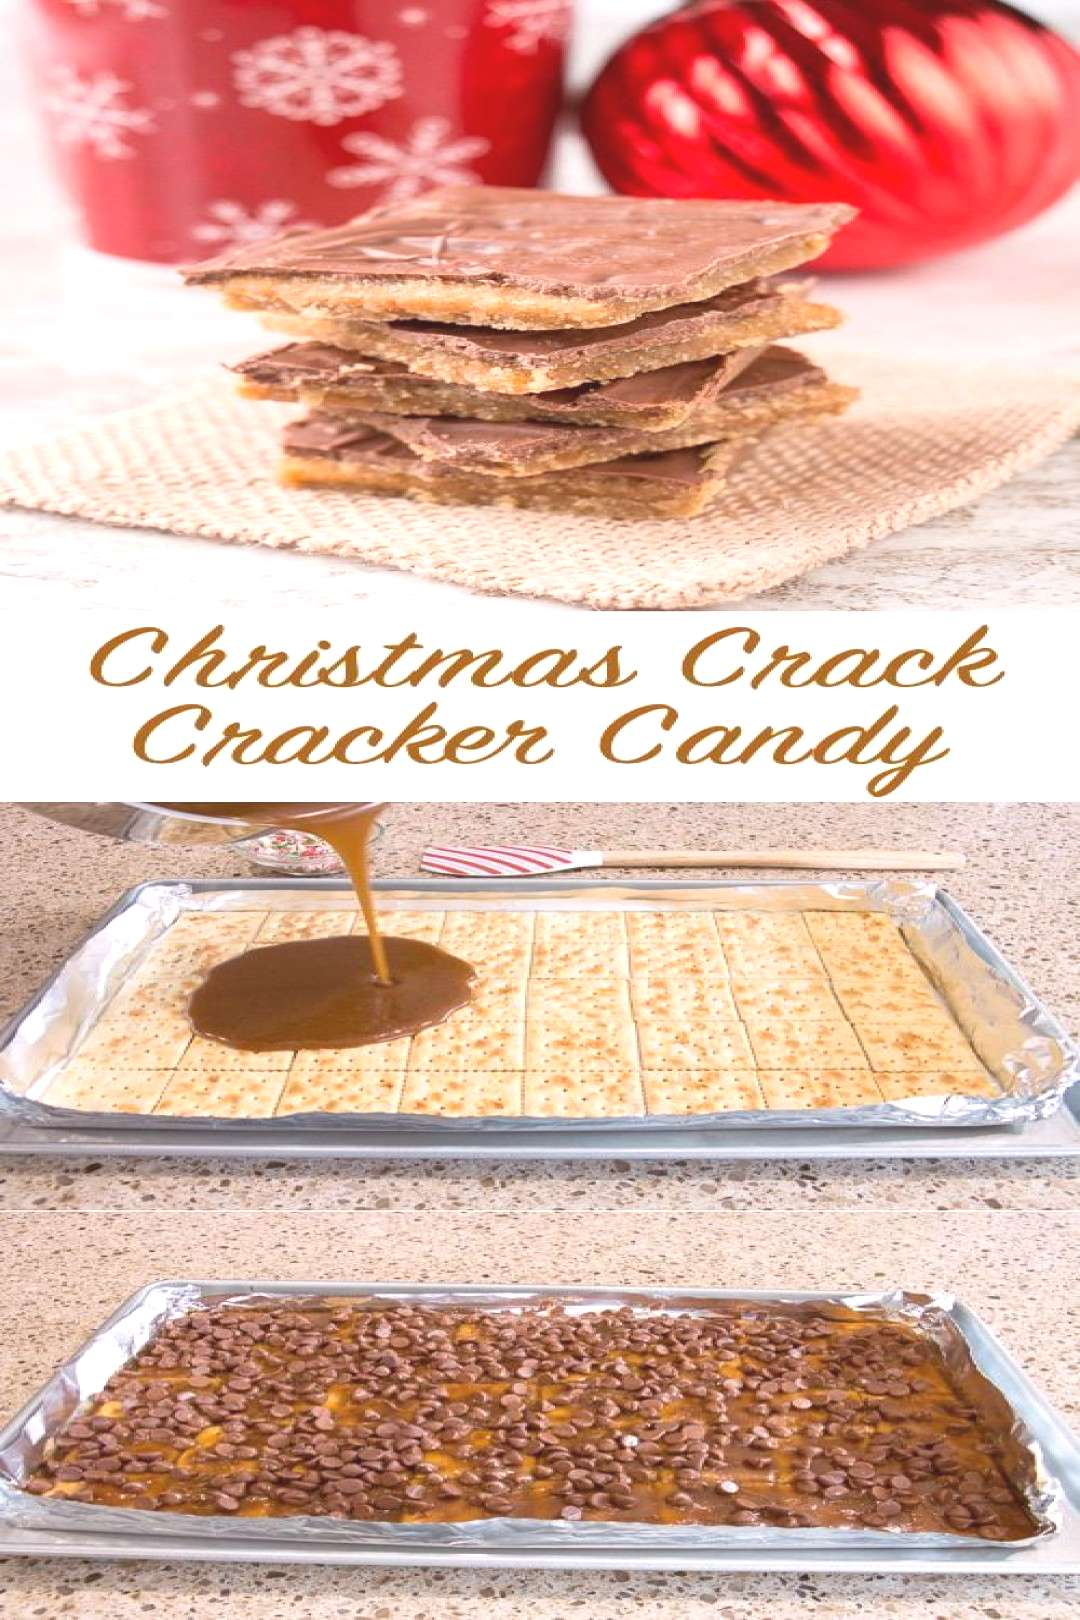 Just 4 ingredients to make this popular and highly addictive Christmas candy.